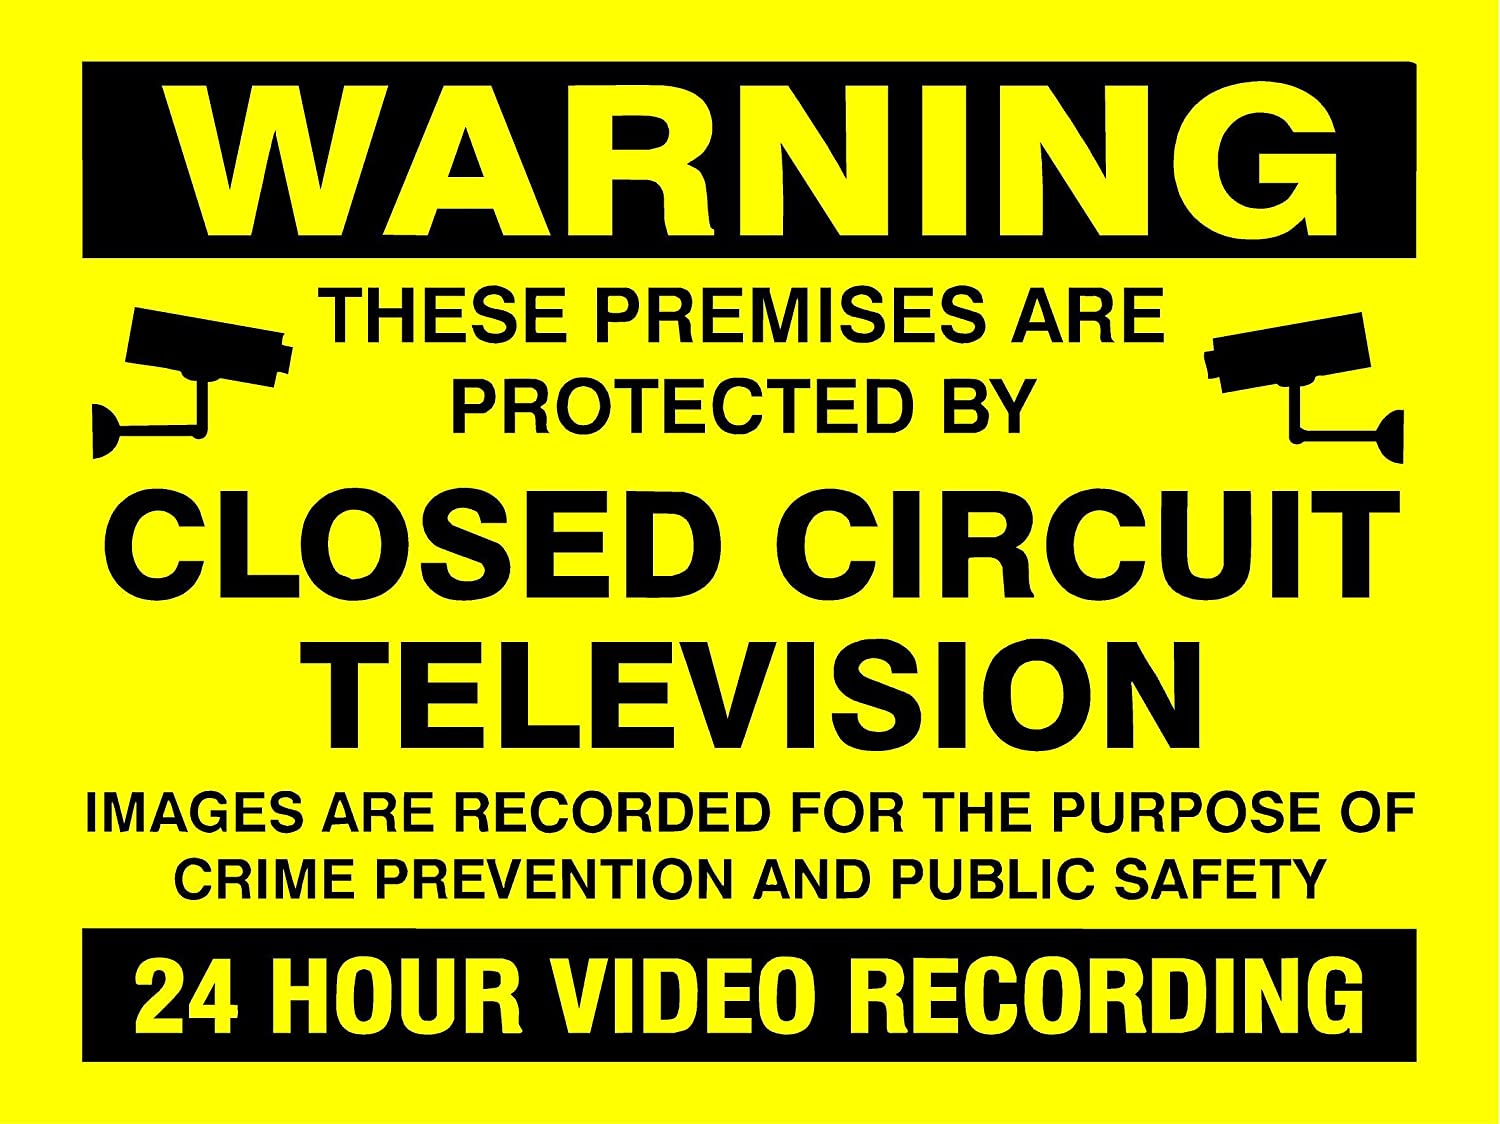 200MMx150MM WARNING 24HR VIDEO RECORDING SIGN RIGID PLASTIC PRINTED